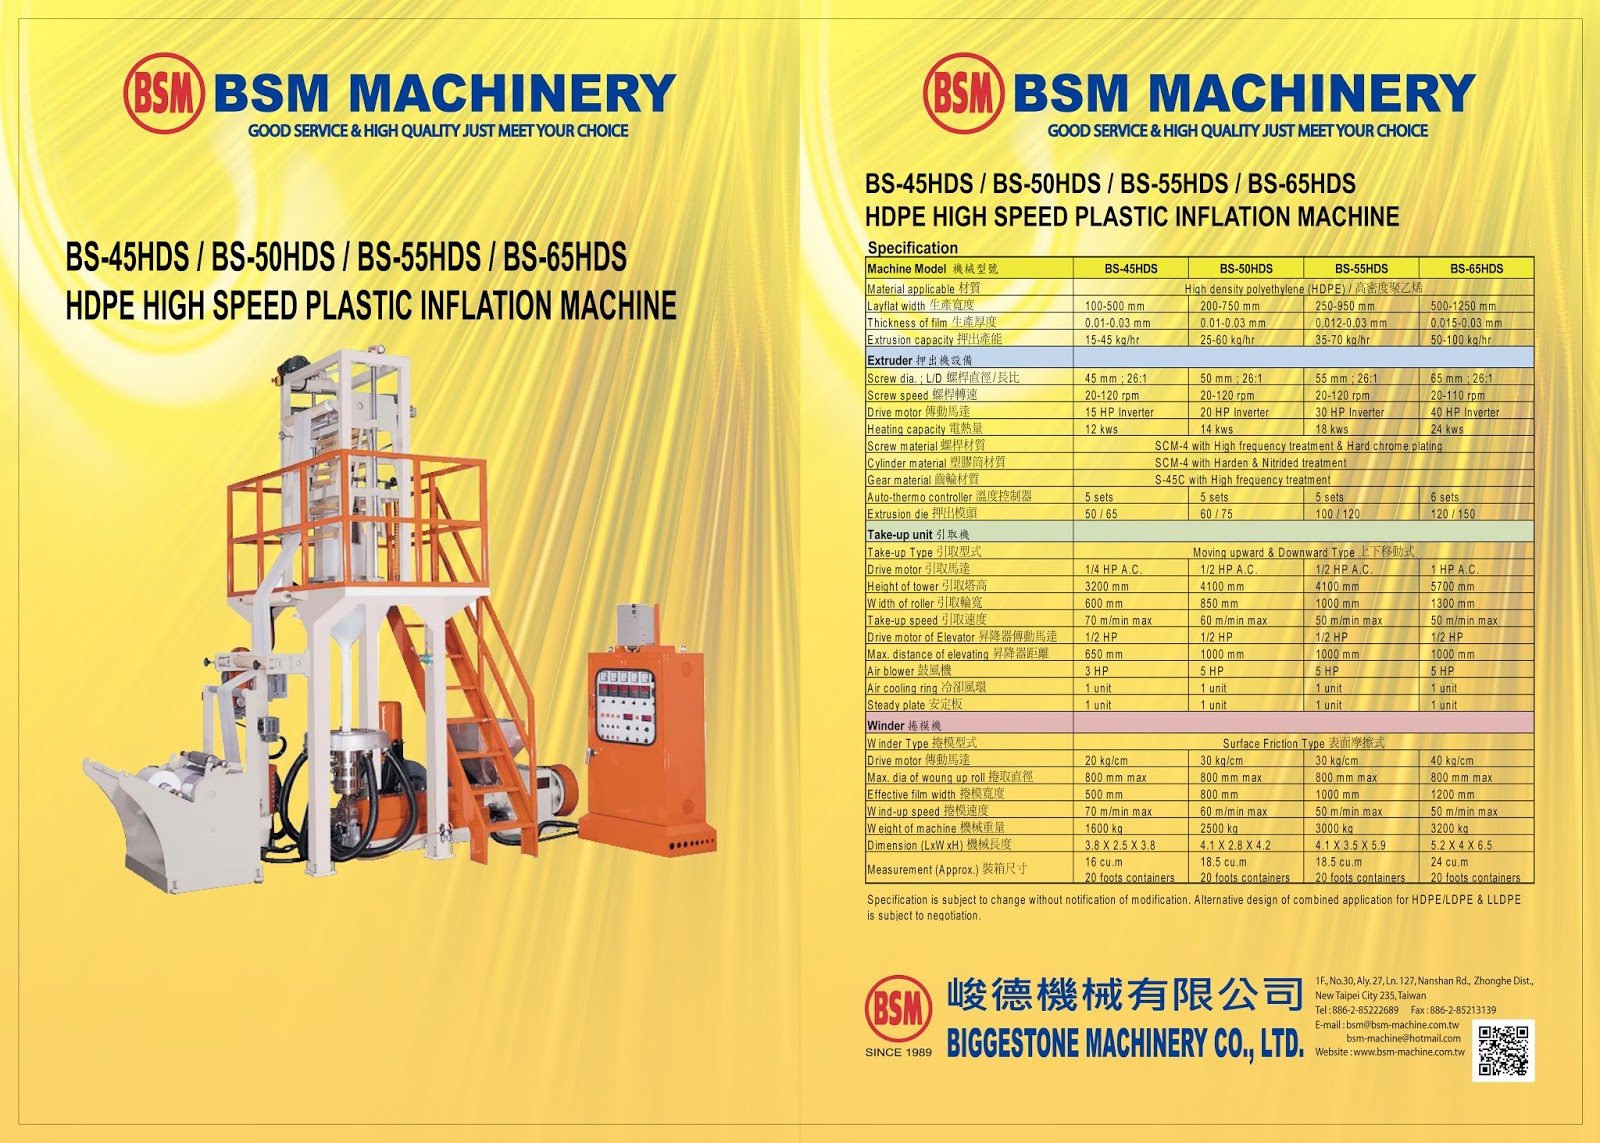 BS-45HDS / BS-50HDS / BS-55HDS / BS-65HDS  HDPE HIGH SPEED PLASTIC INFLATION MACHINE